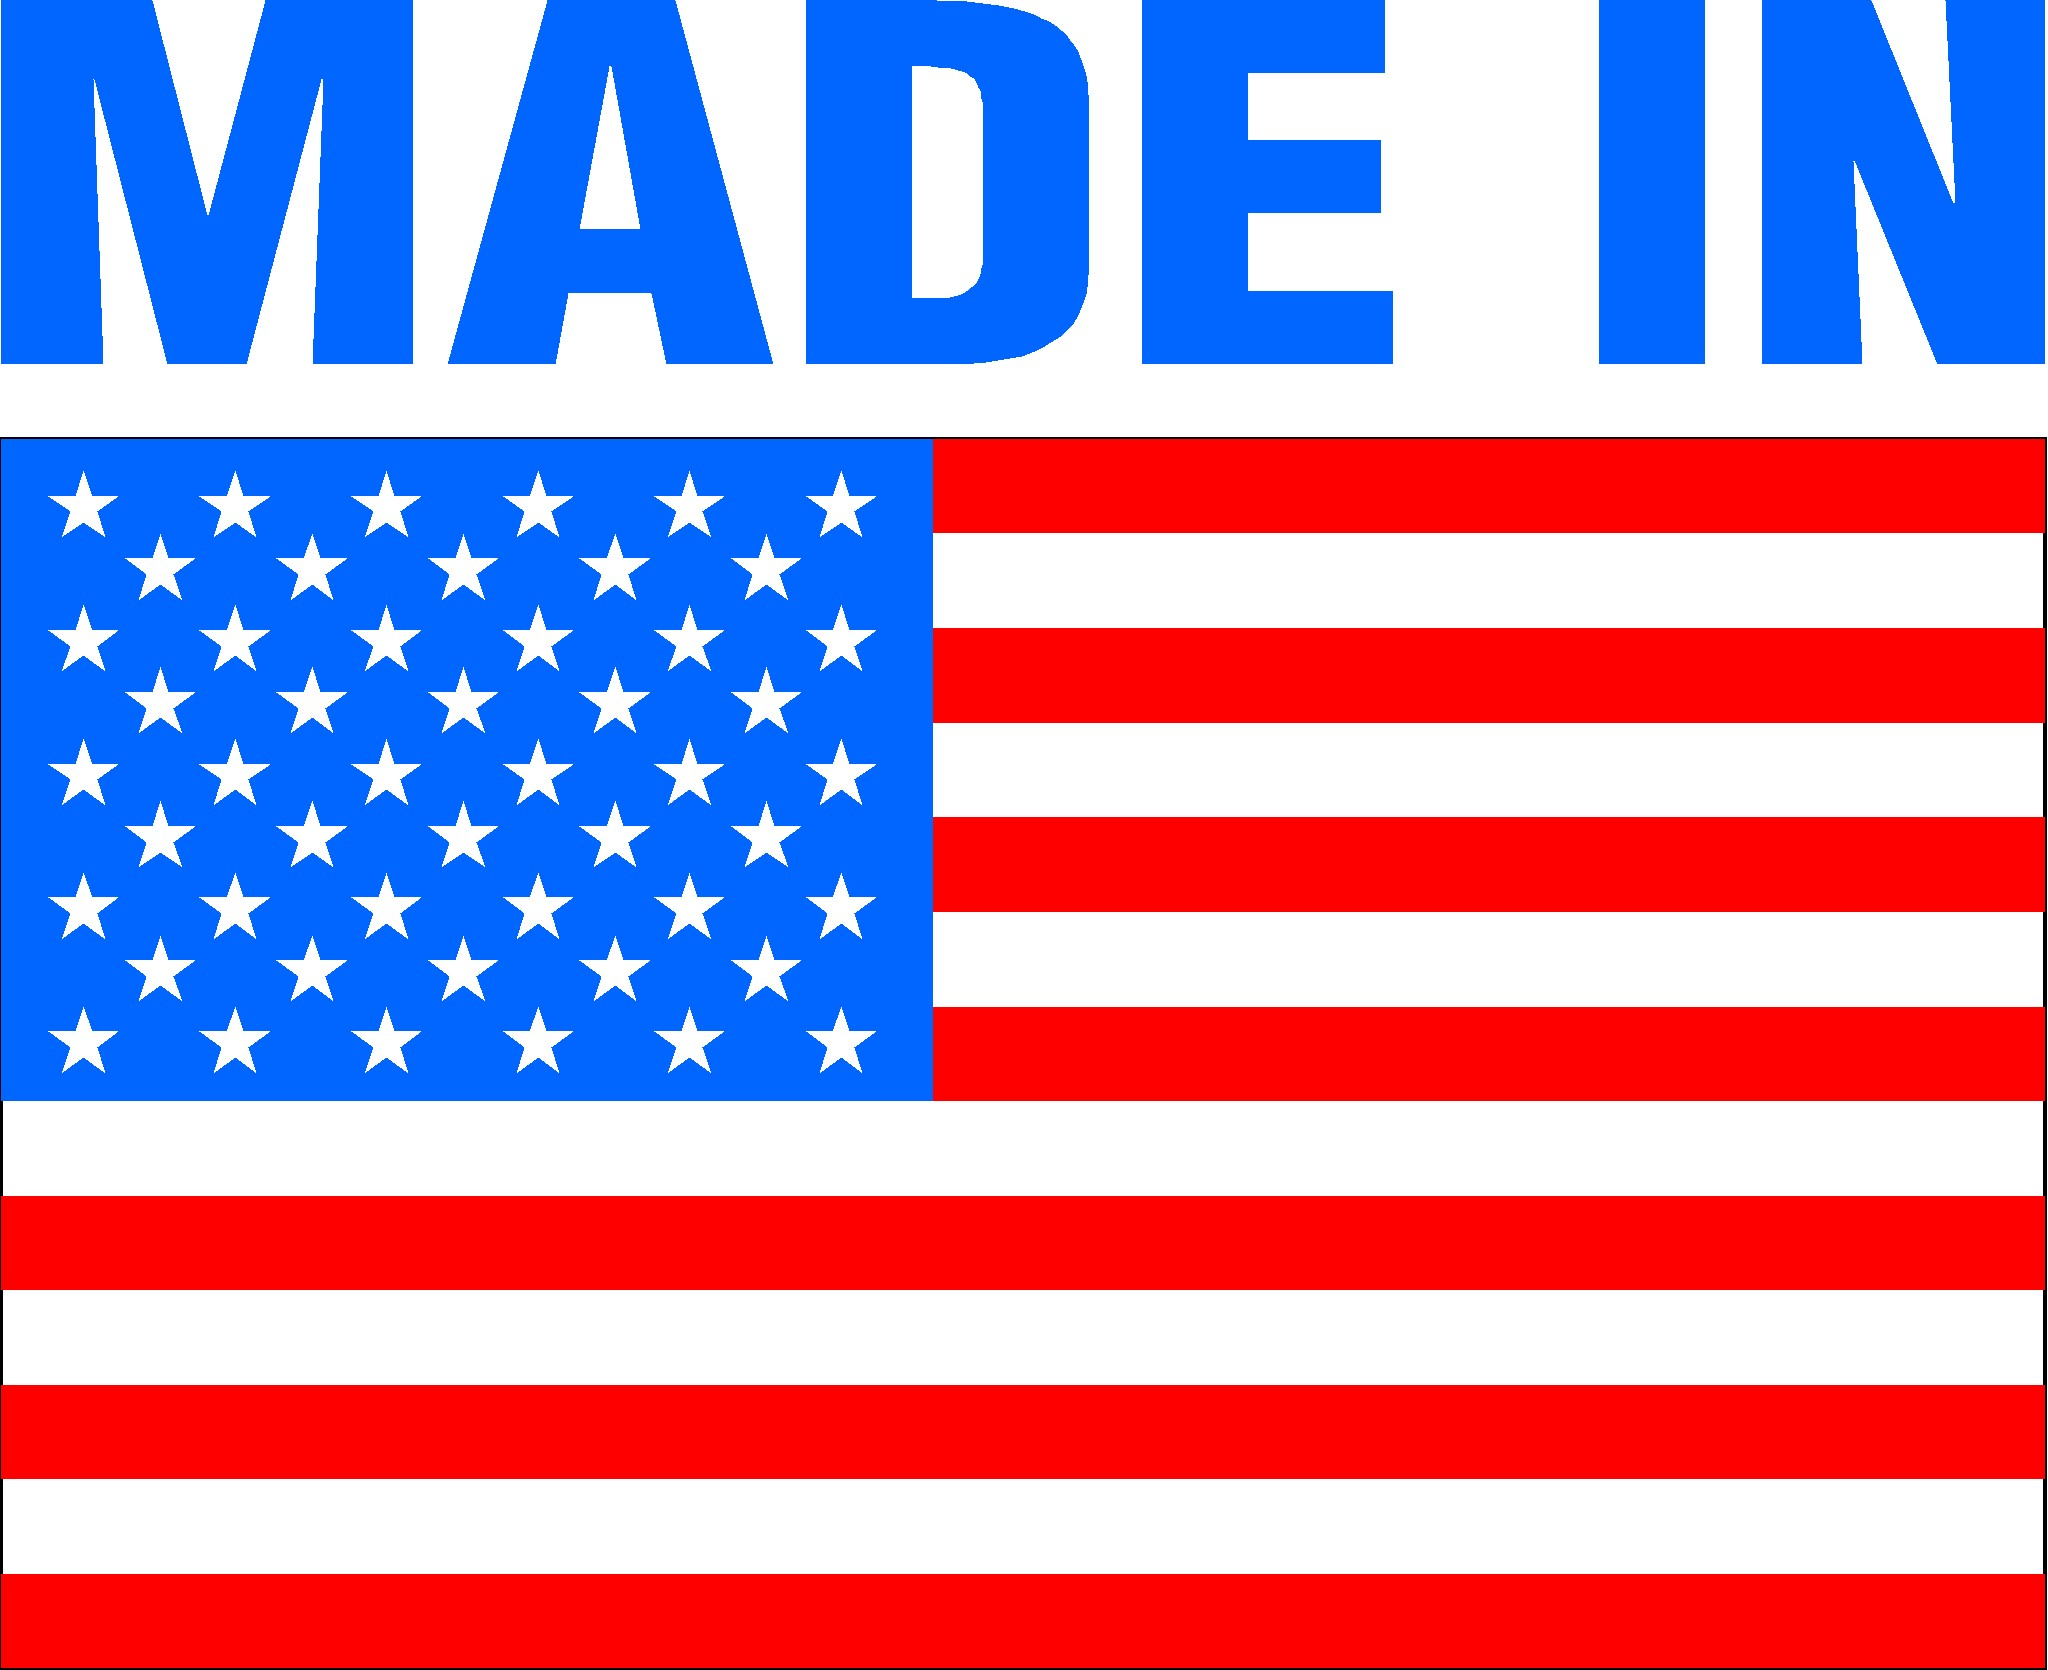 Made in america us flags only for fl governments newstalk florida tallahassee ap cities counties and the state of florida will have to purchase state and american flags made in the united states under a bill signed publicscrutiny Choice Image